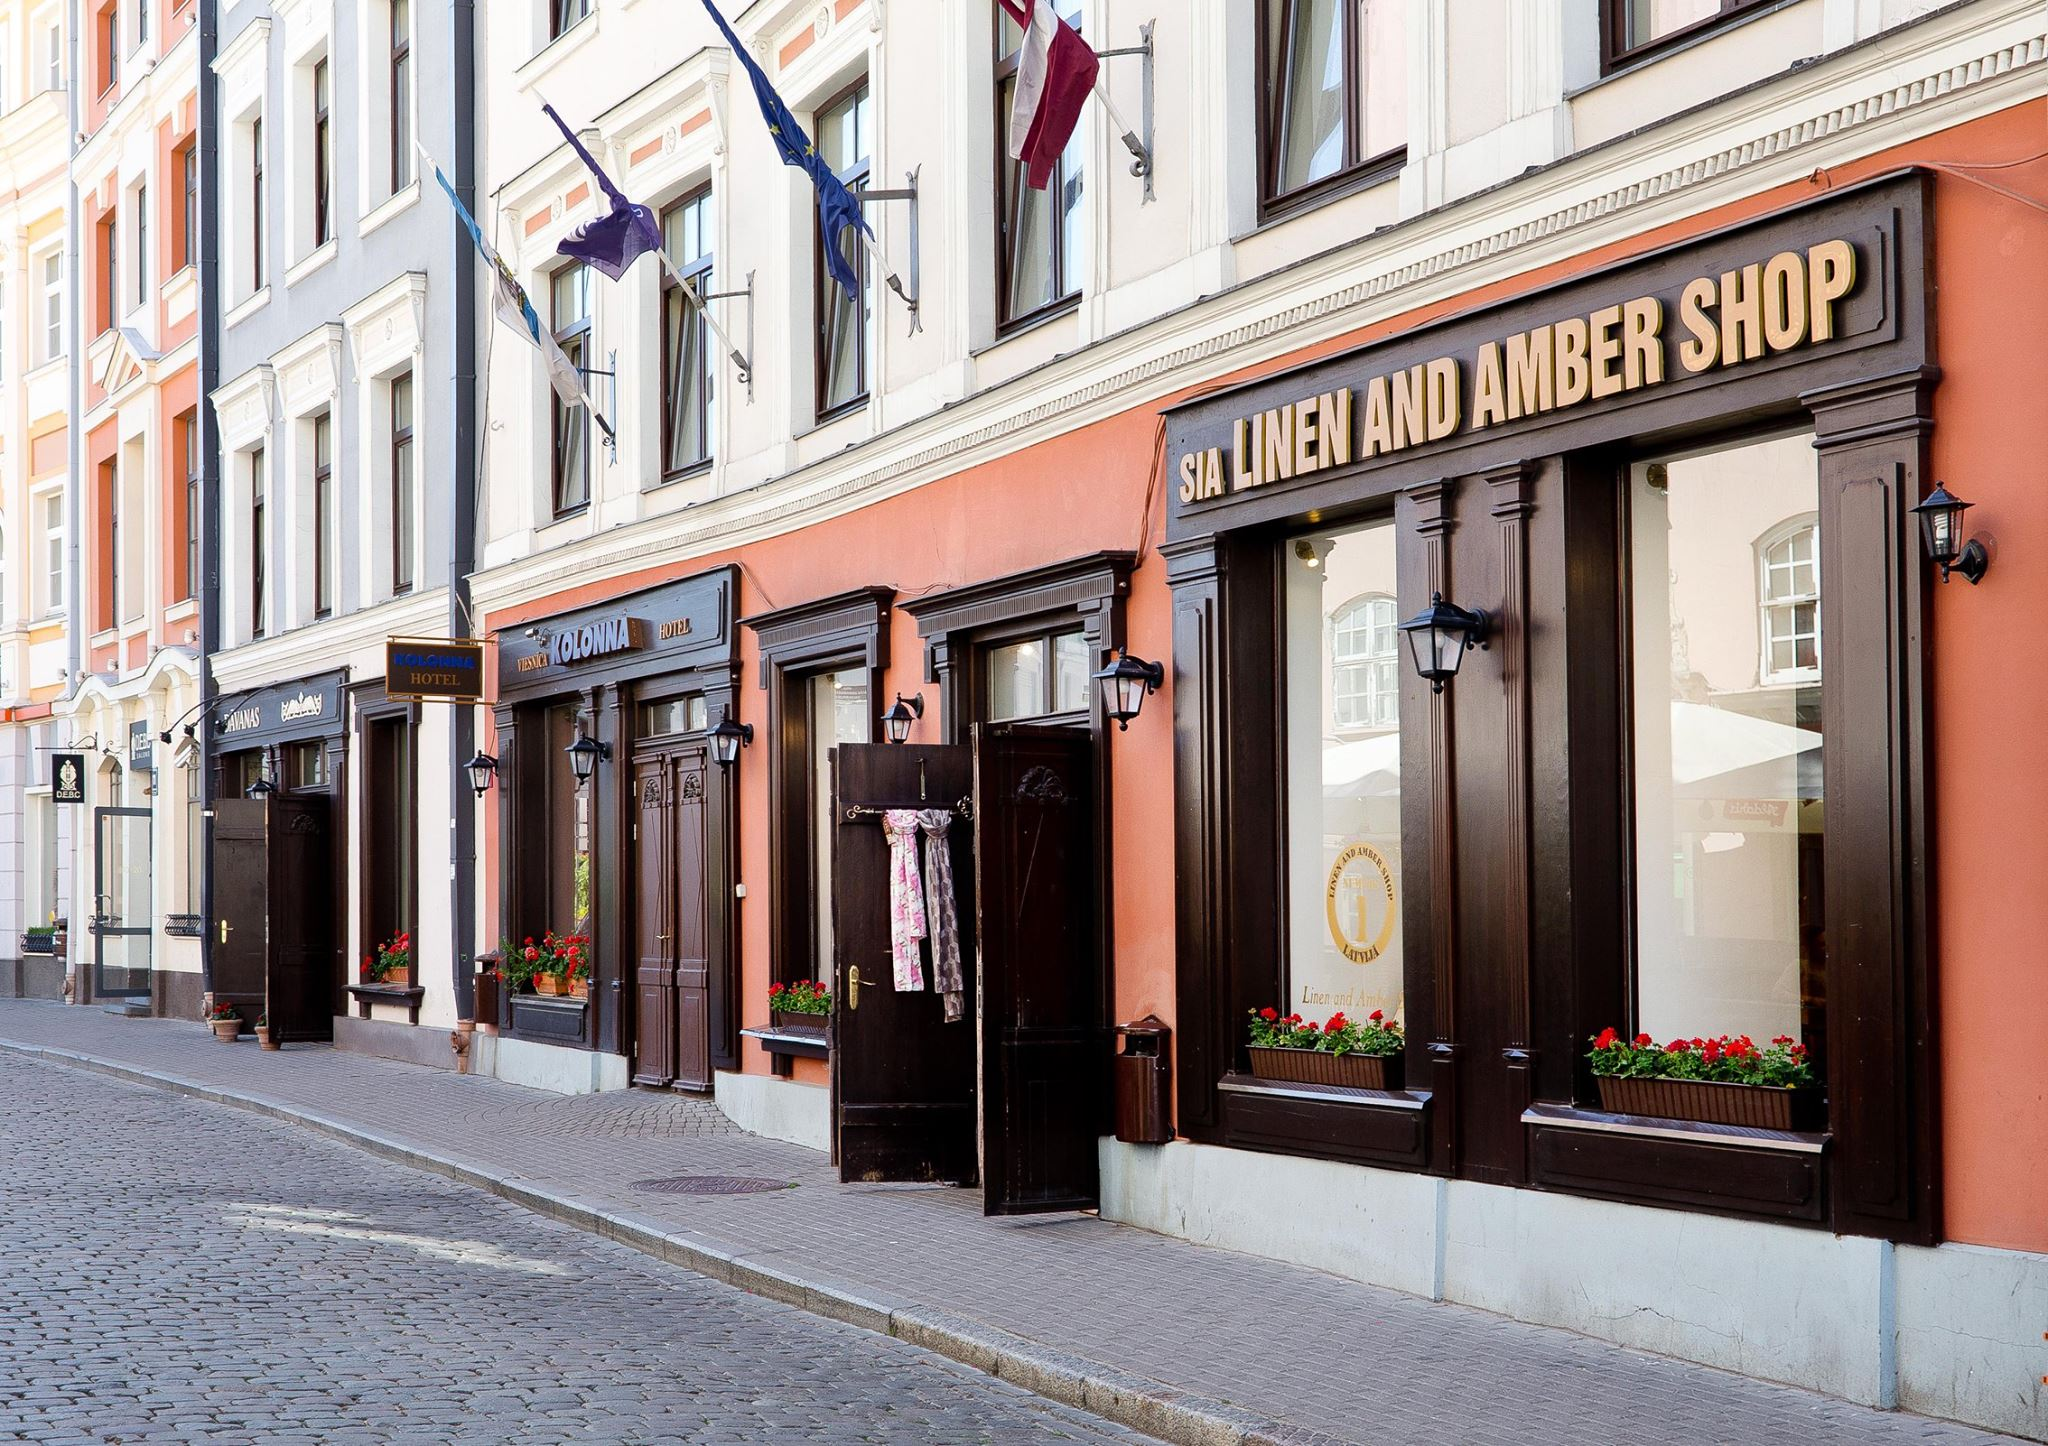 Linen and Amber Shop